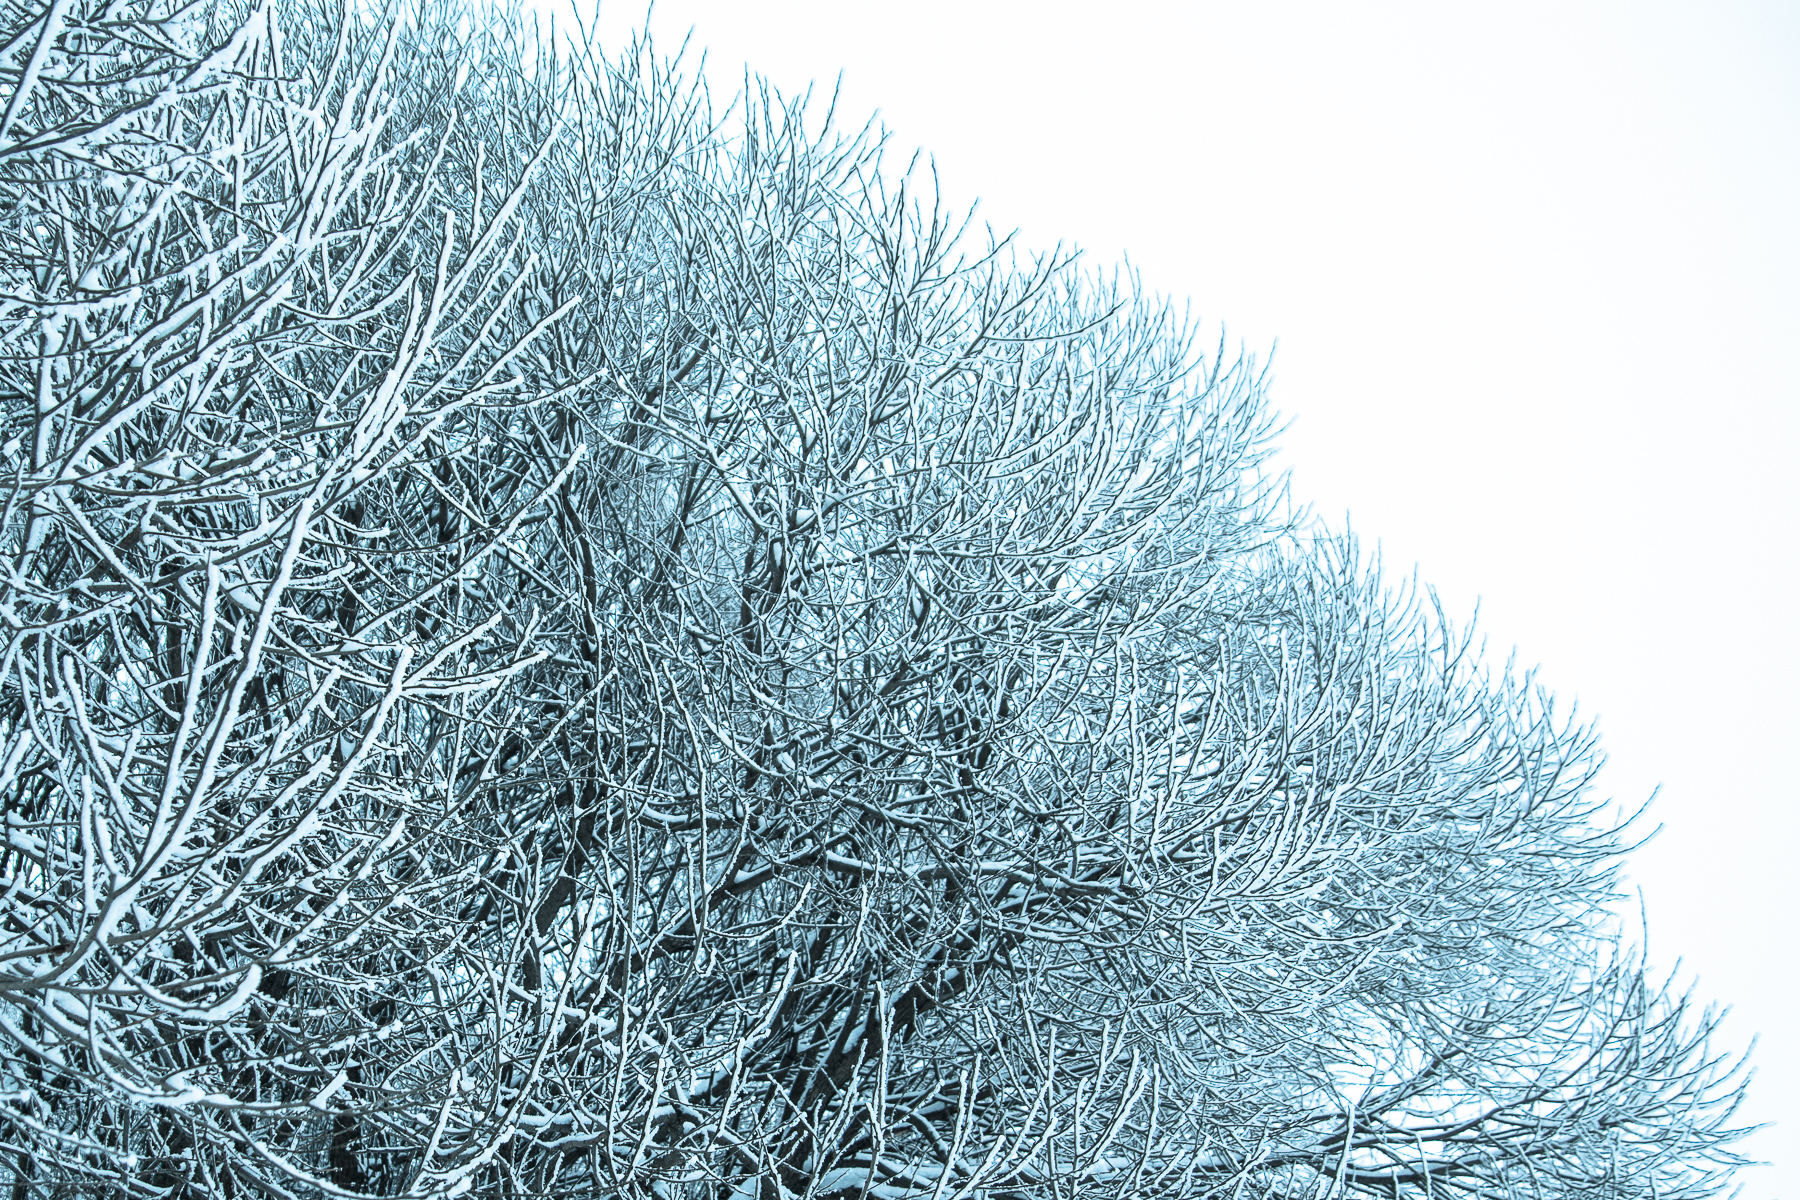 Branches With Frost Via @Atisgailis